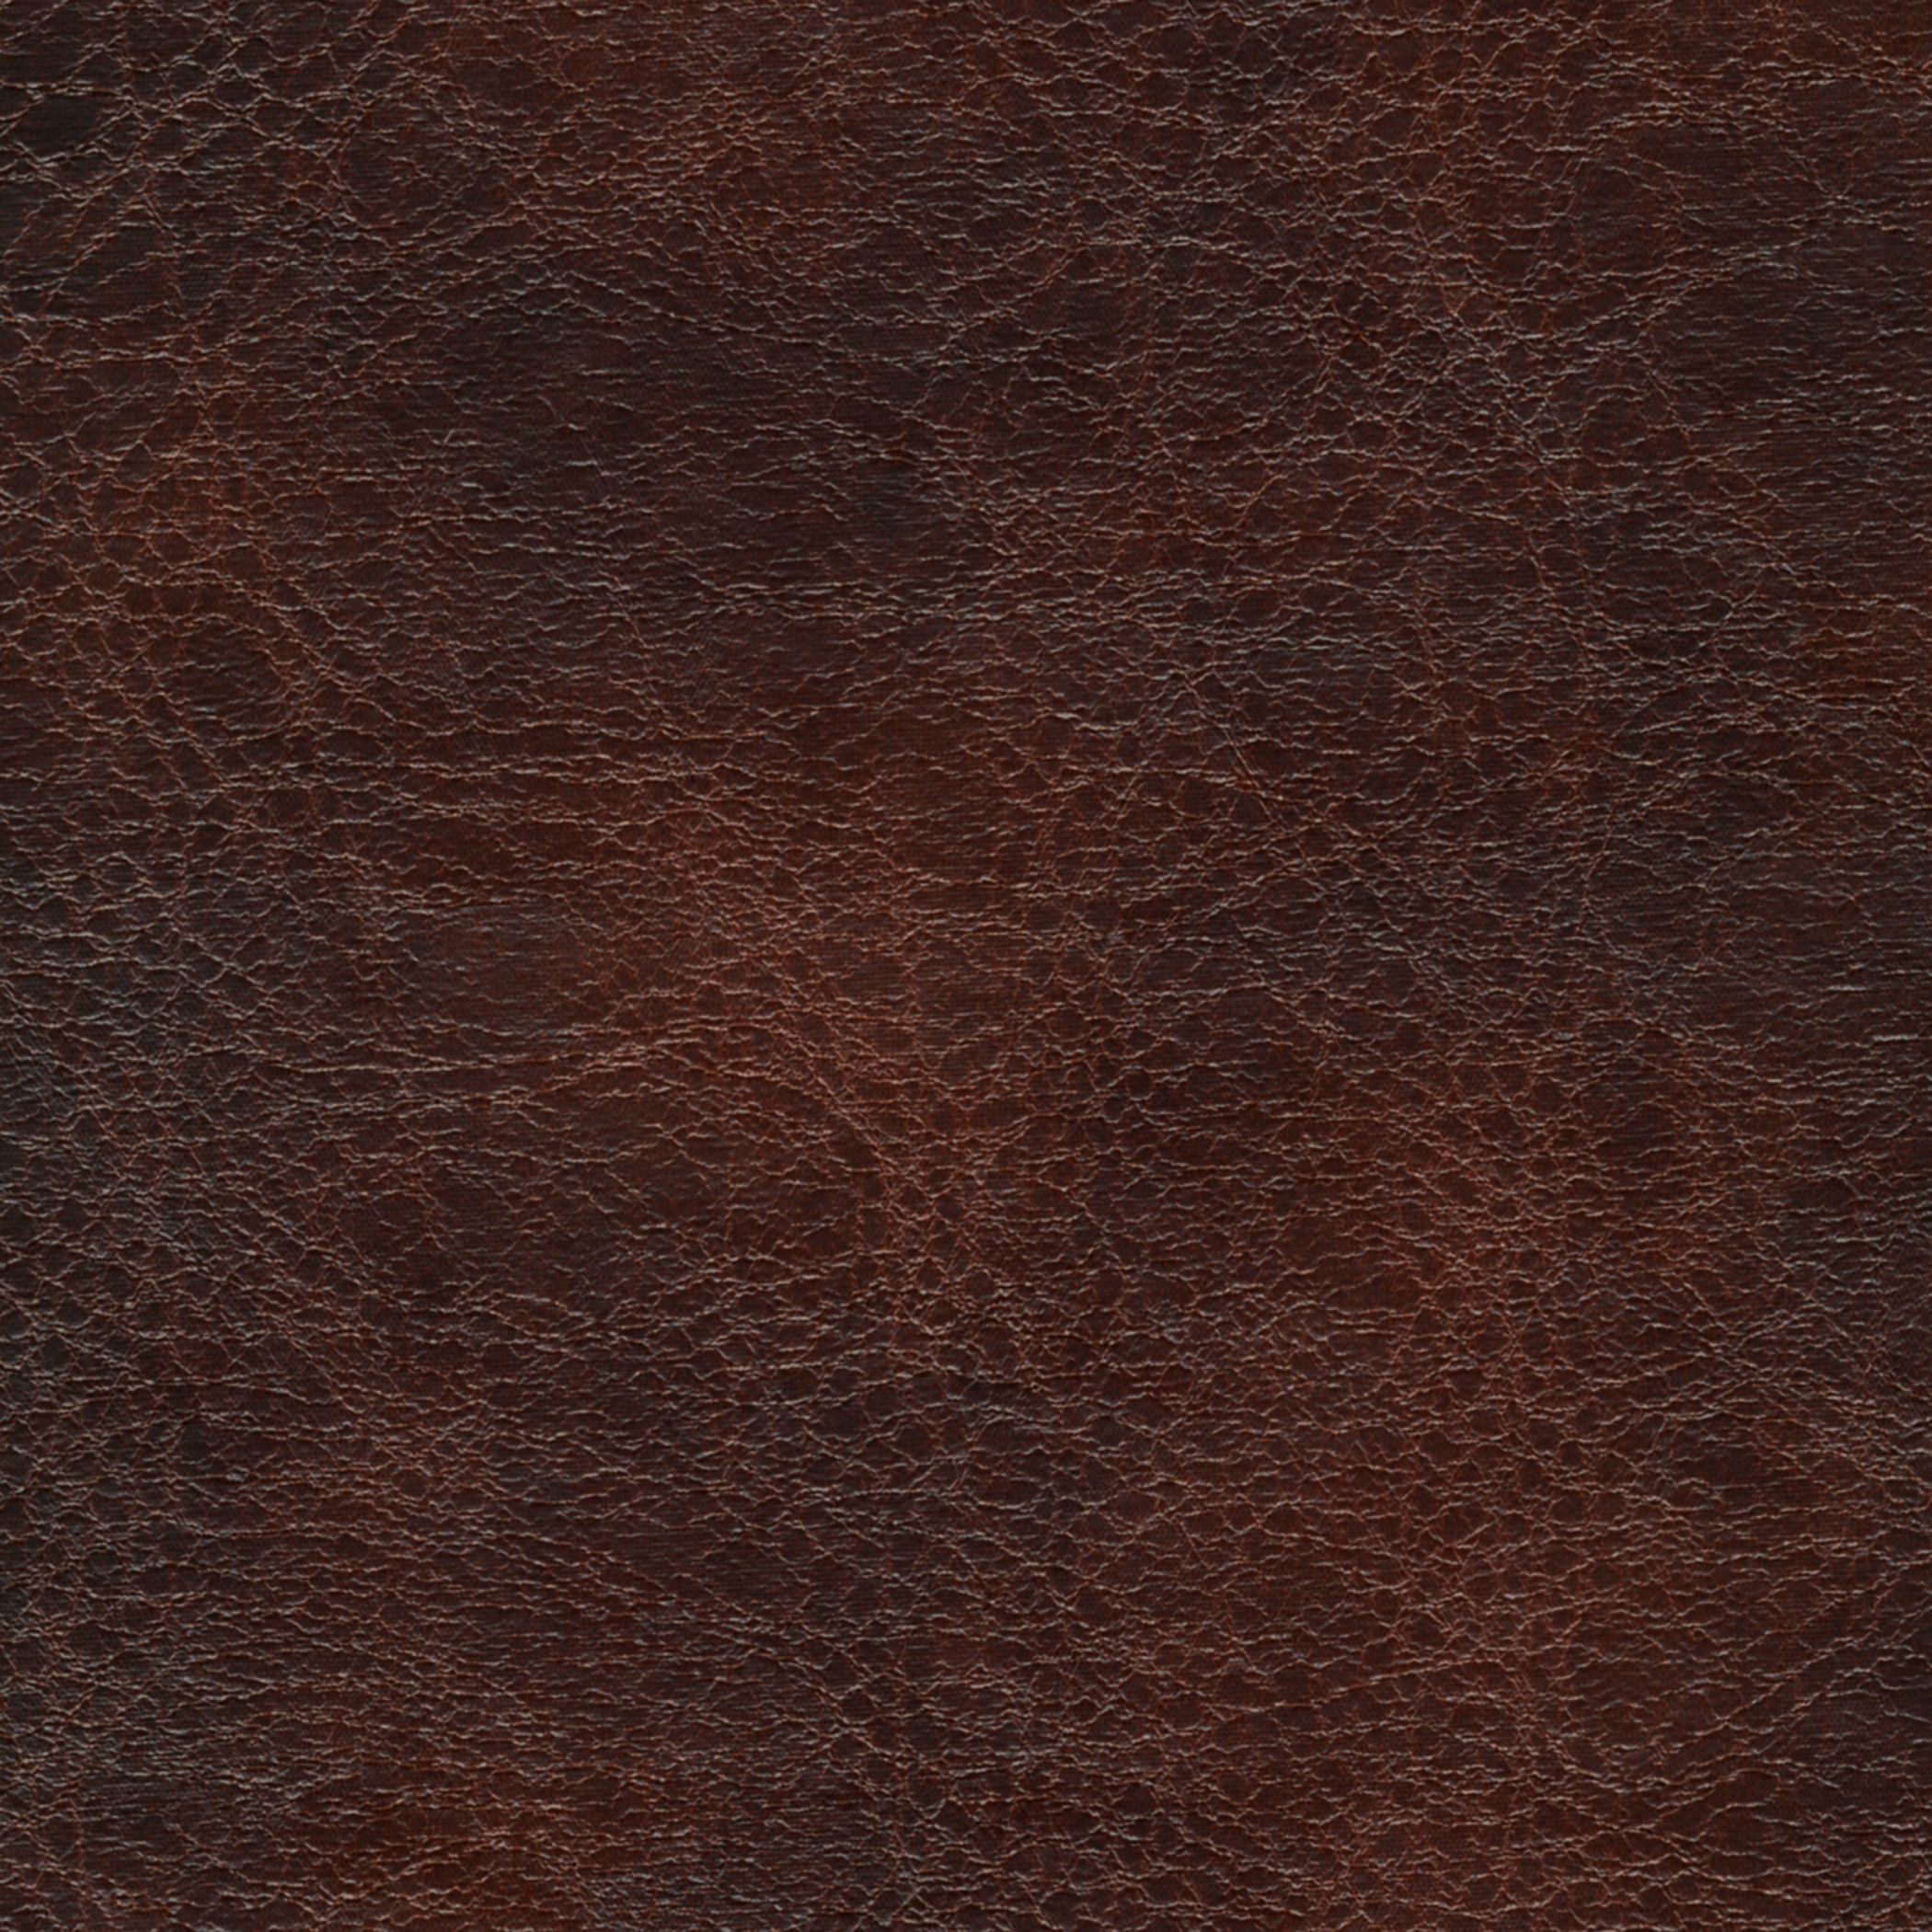 Red And Burgundy Color Solid Pattern Faux Leather Type Upholstery Fabric Called At570 Initiation Leather Upholstery Fabric Upholstery Fabric Leather Upholstery